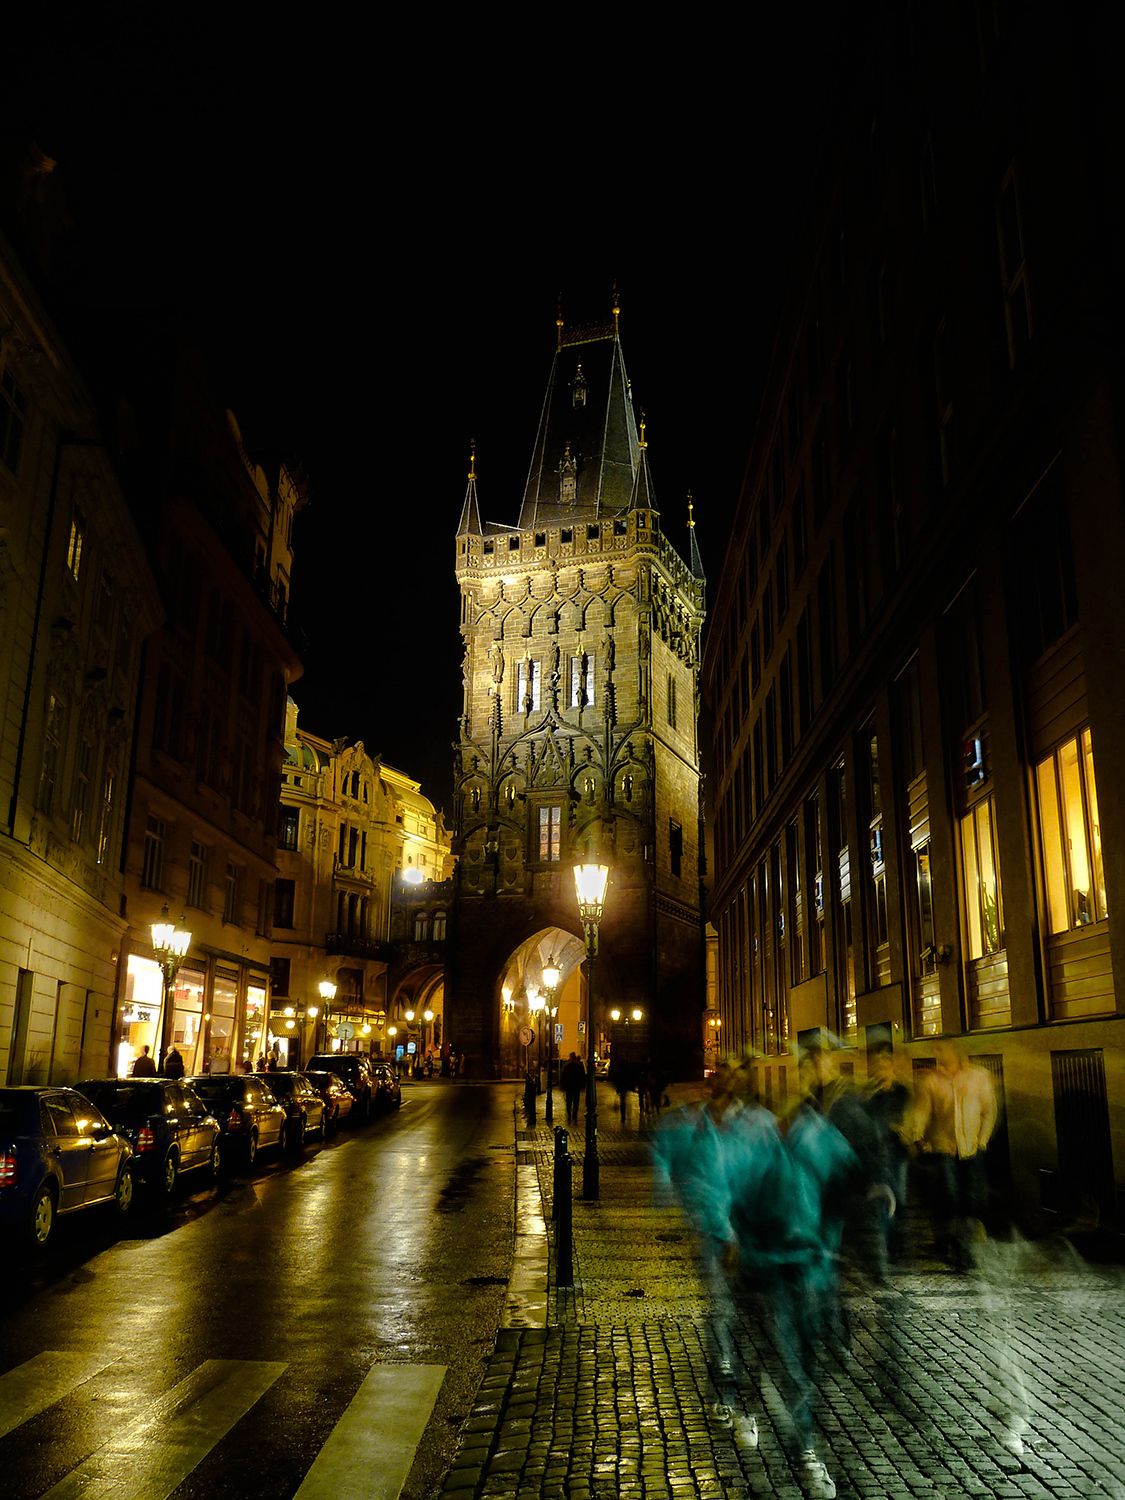 <p>A night scene in Prague's historic centre. The tower is the Prašná brána, or Powder Tower, a 15th Century gate in the city walls.</p>